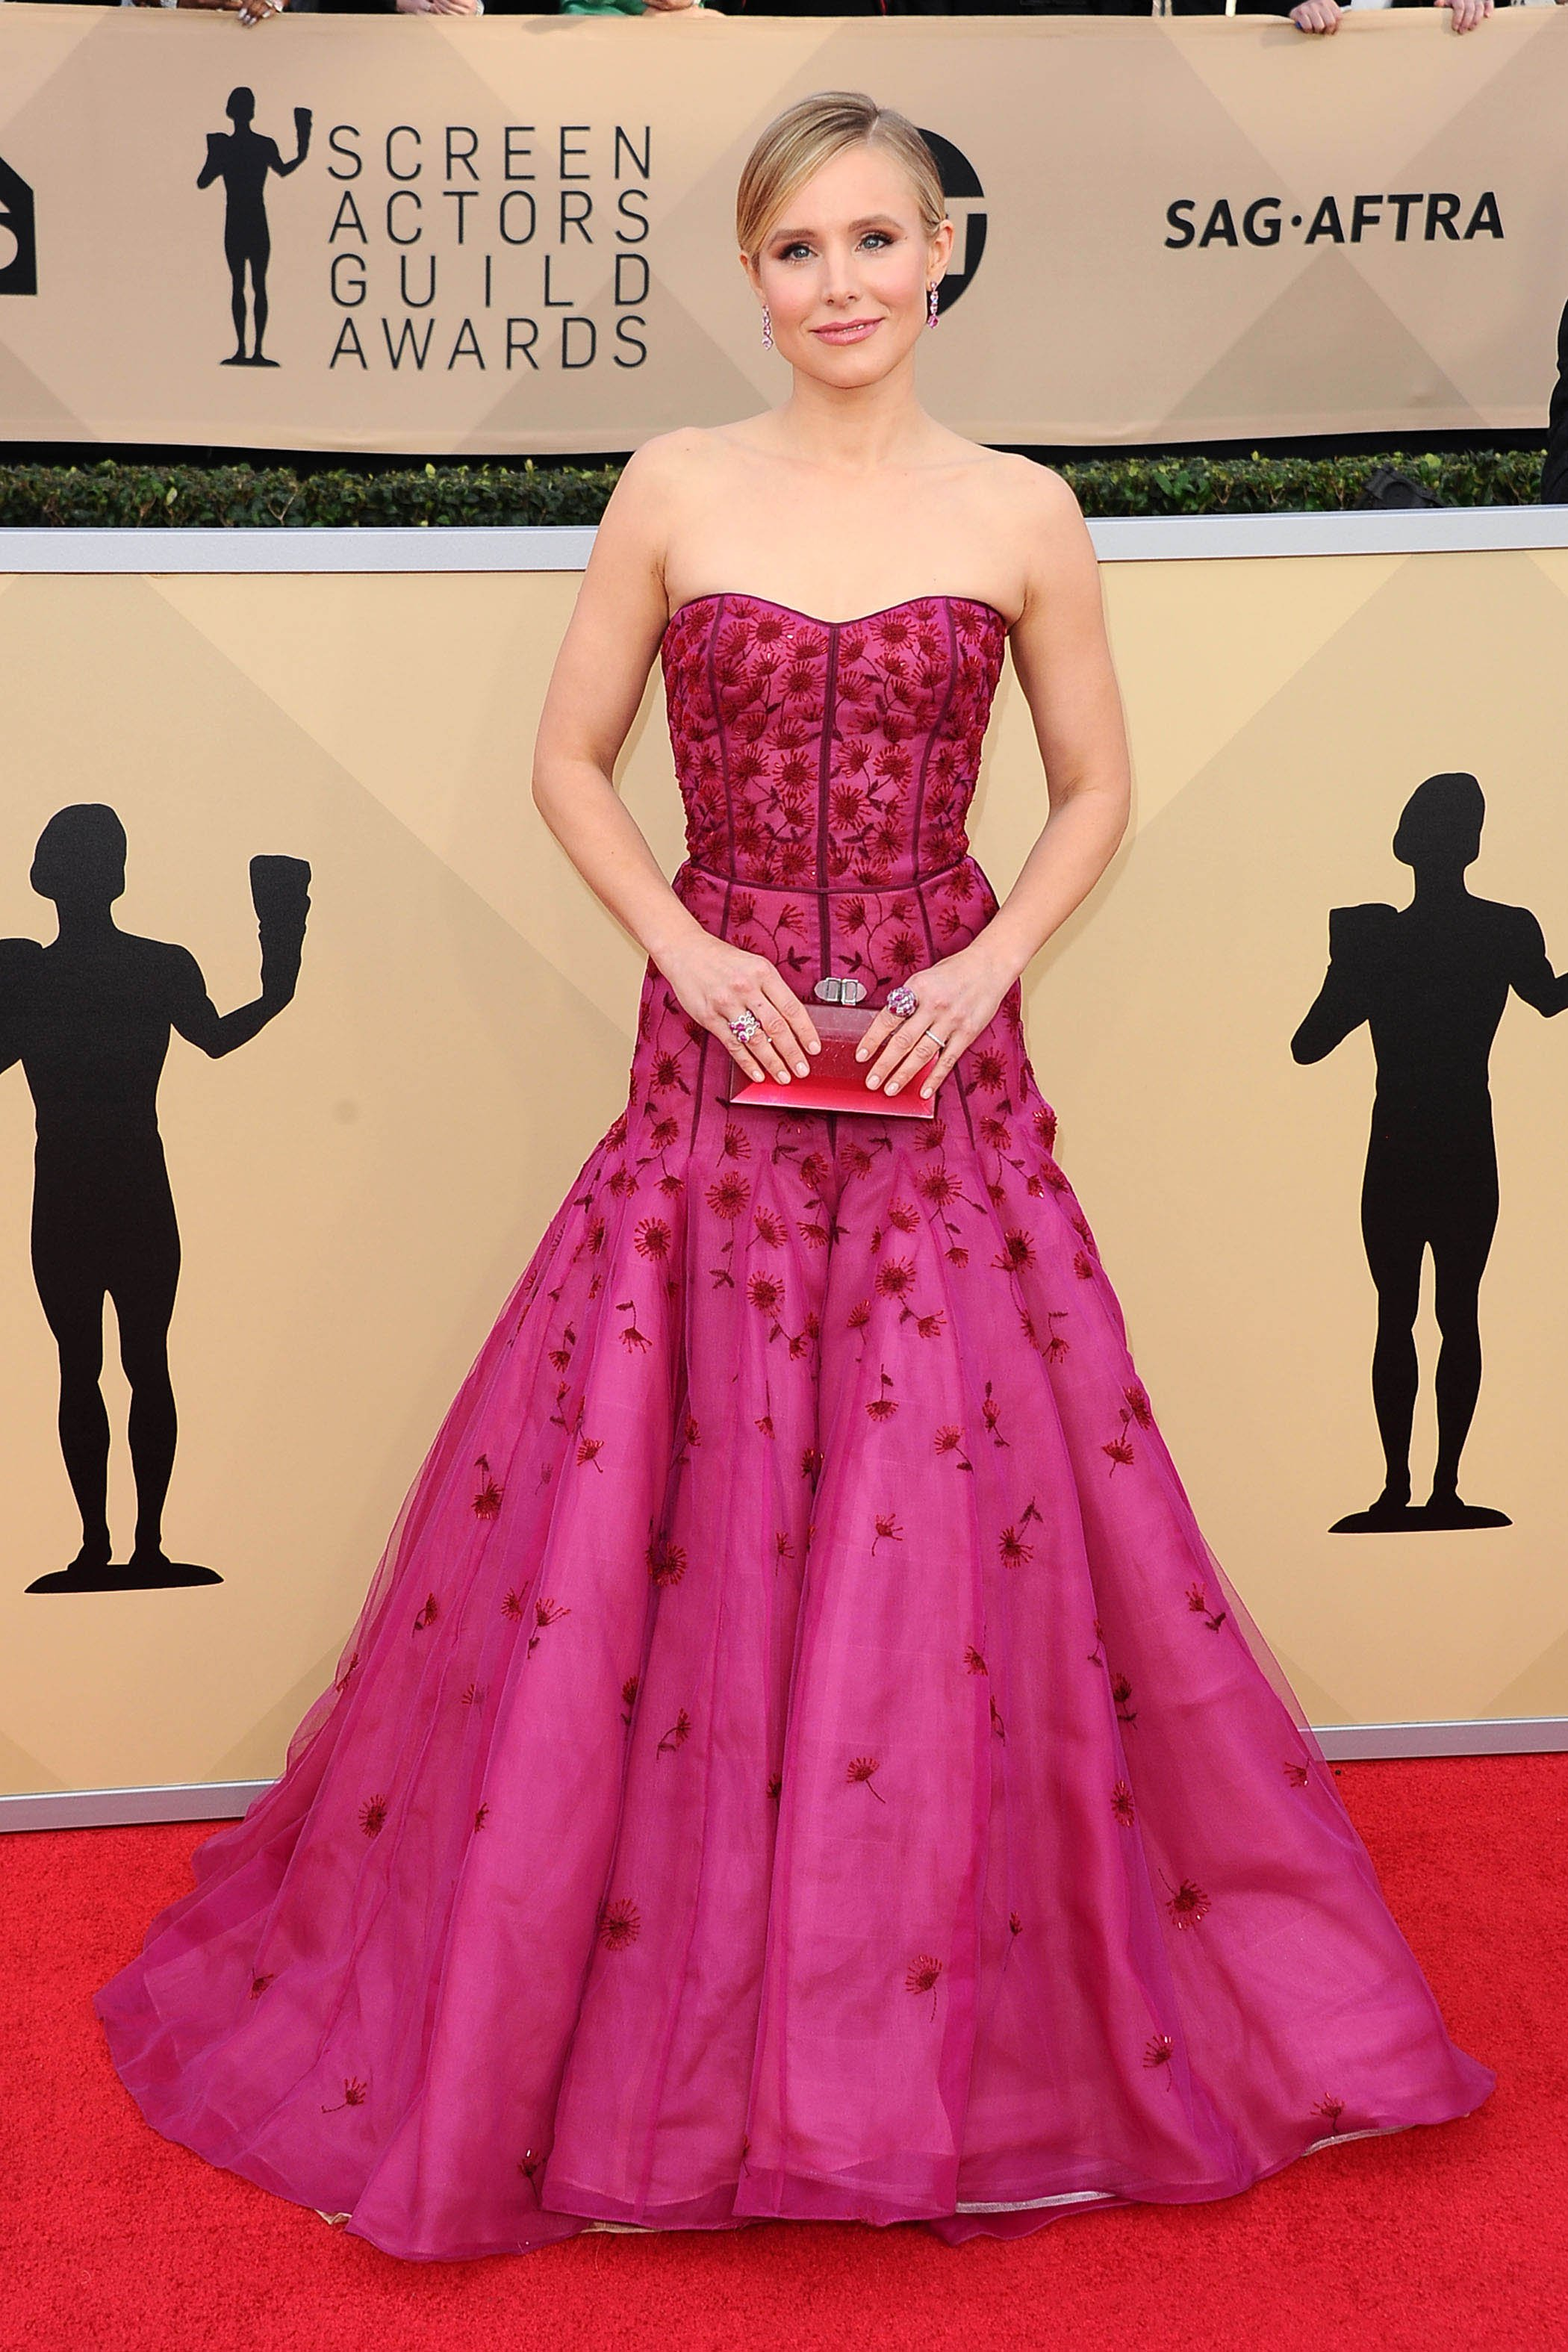 , Los Angeles, CA -20180121 - The 24th Annual Screen Actors Guild Awards at Shrine Auditorium  -PICTURED: Kristen Bell -, Image: 360896855, License: Rights-managed, Restrictions: , Model Release: no, Credit line: Profimedia, INSTAR Images